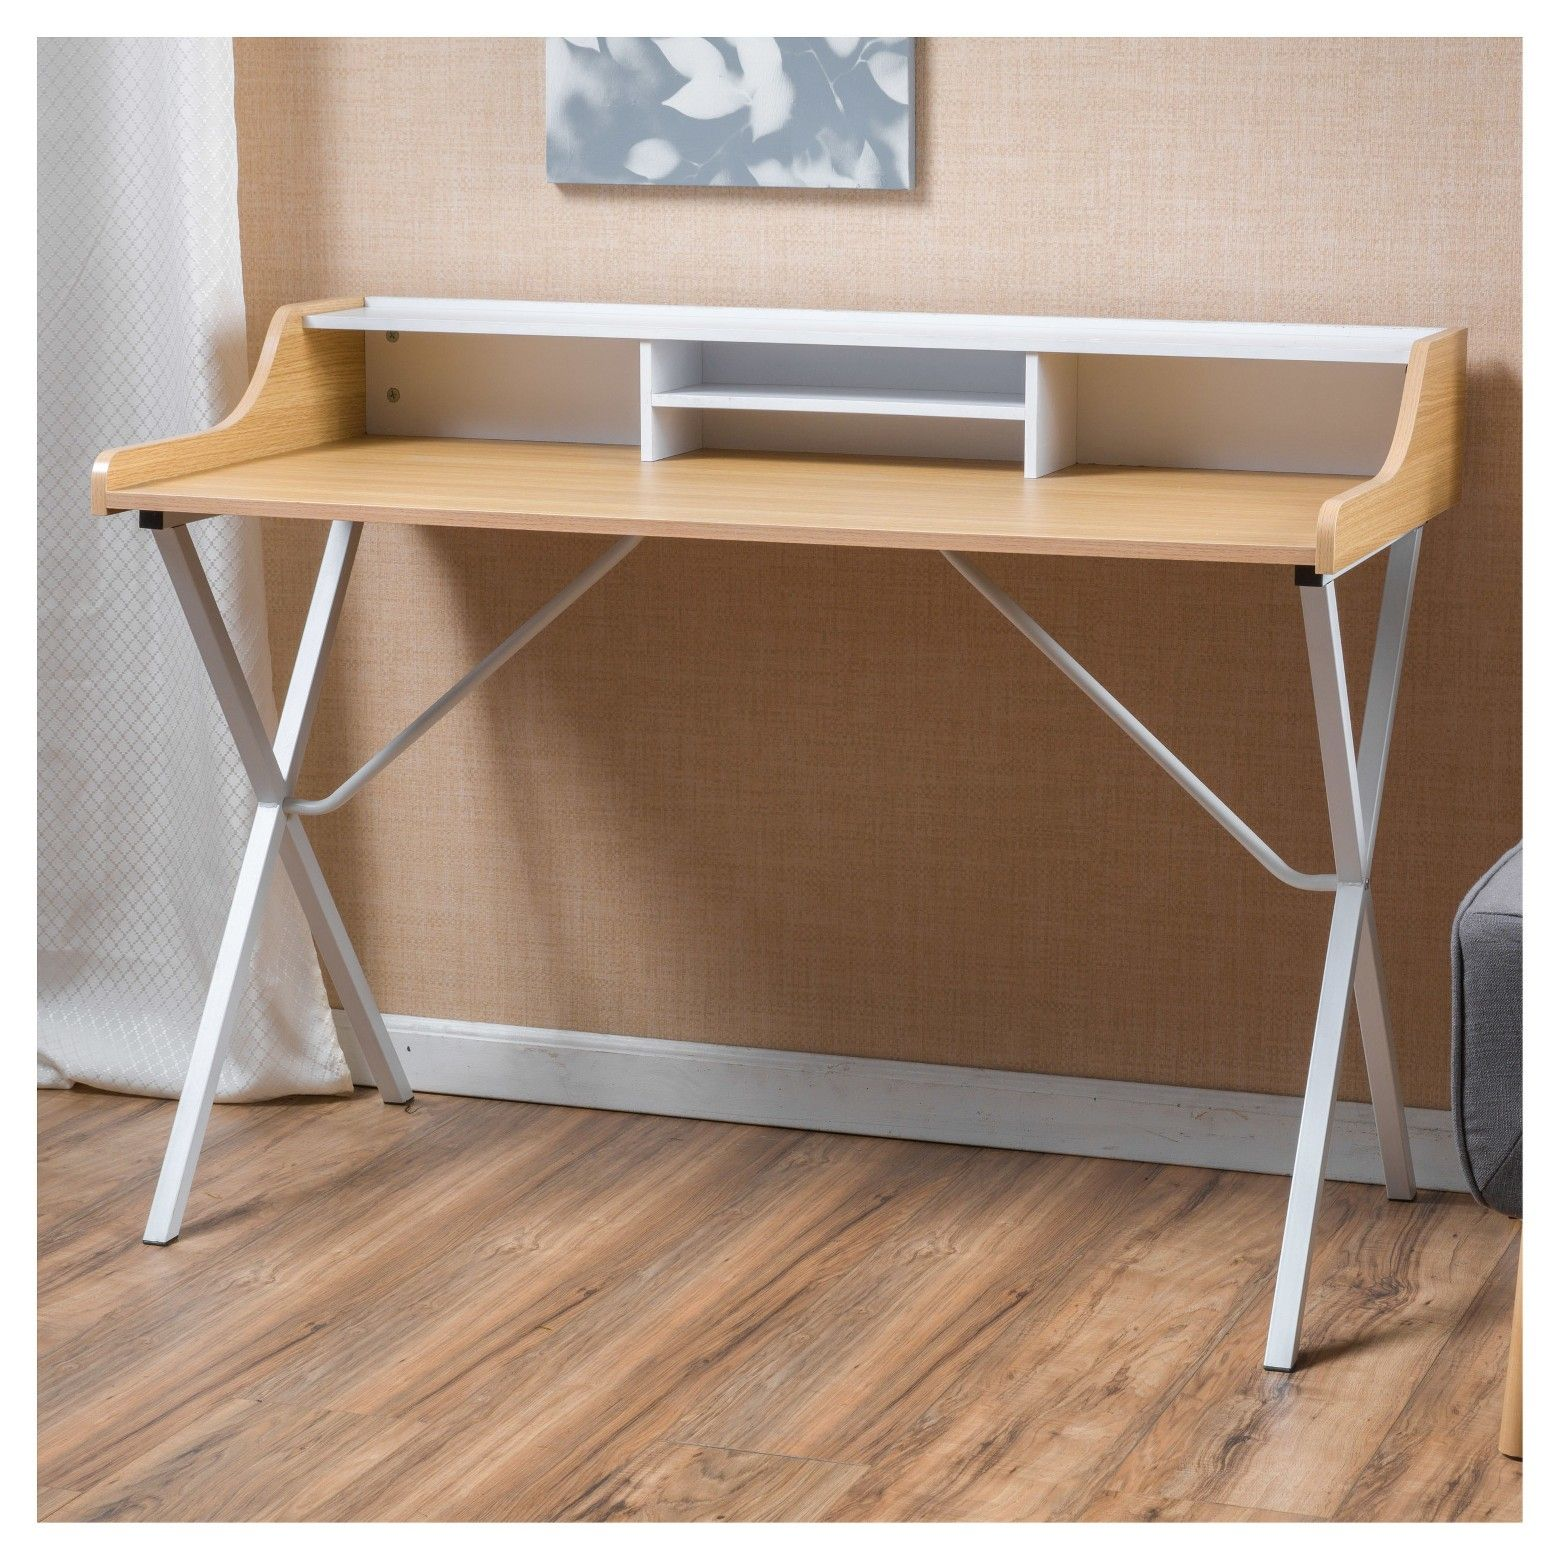 aa436ce0a4c Aalto Computer Desk - White - Christopher Knight Home